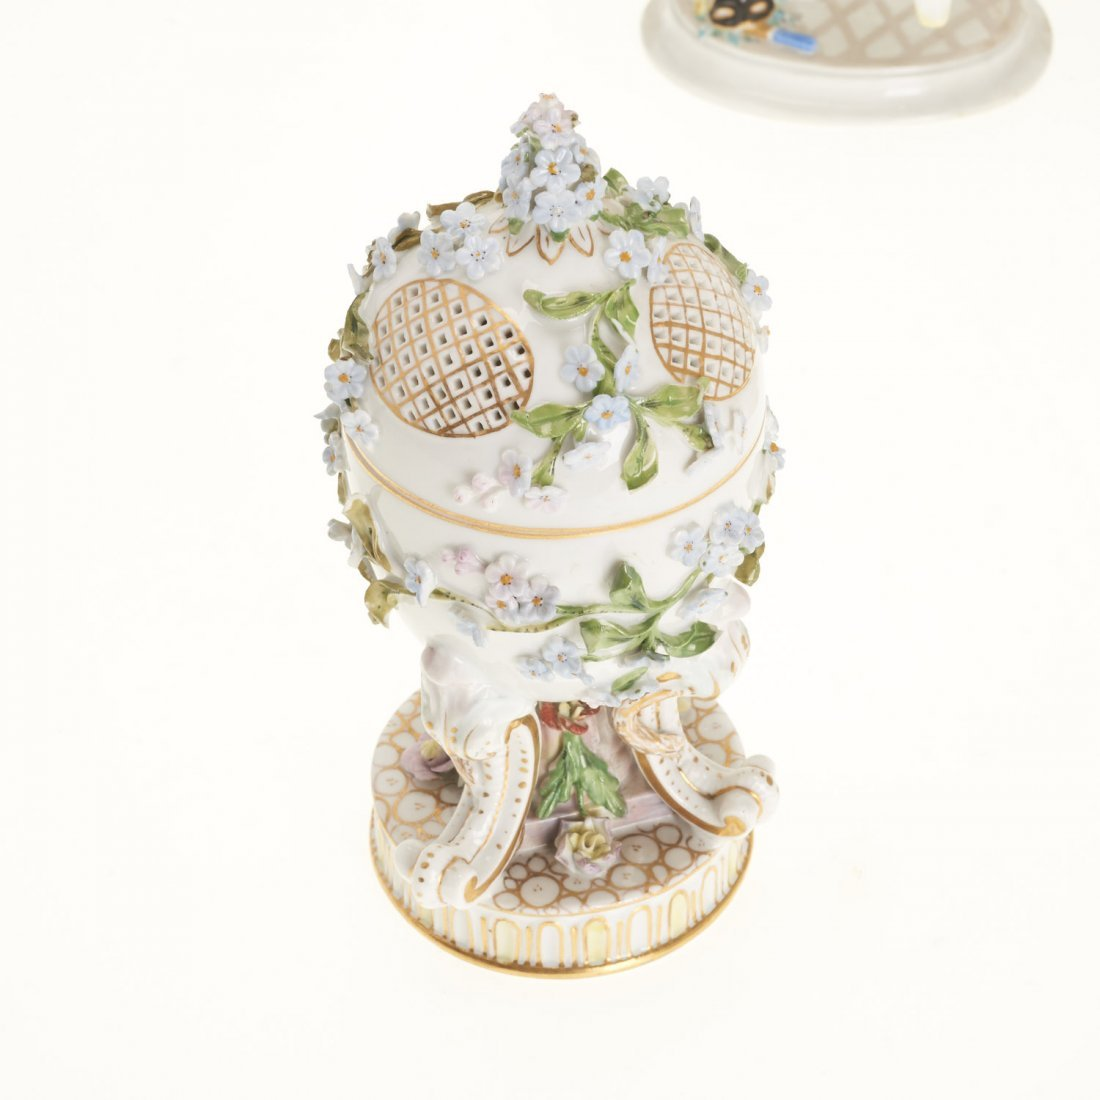 (5) Meissen porcelain figurines and articles - 3